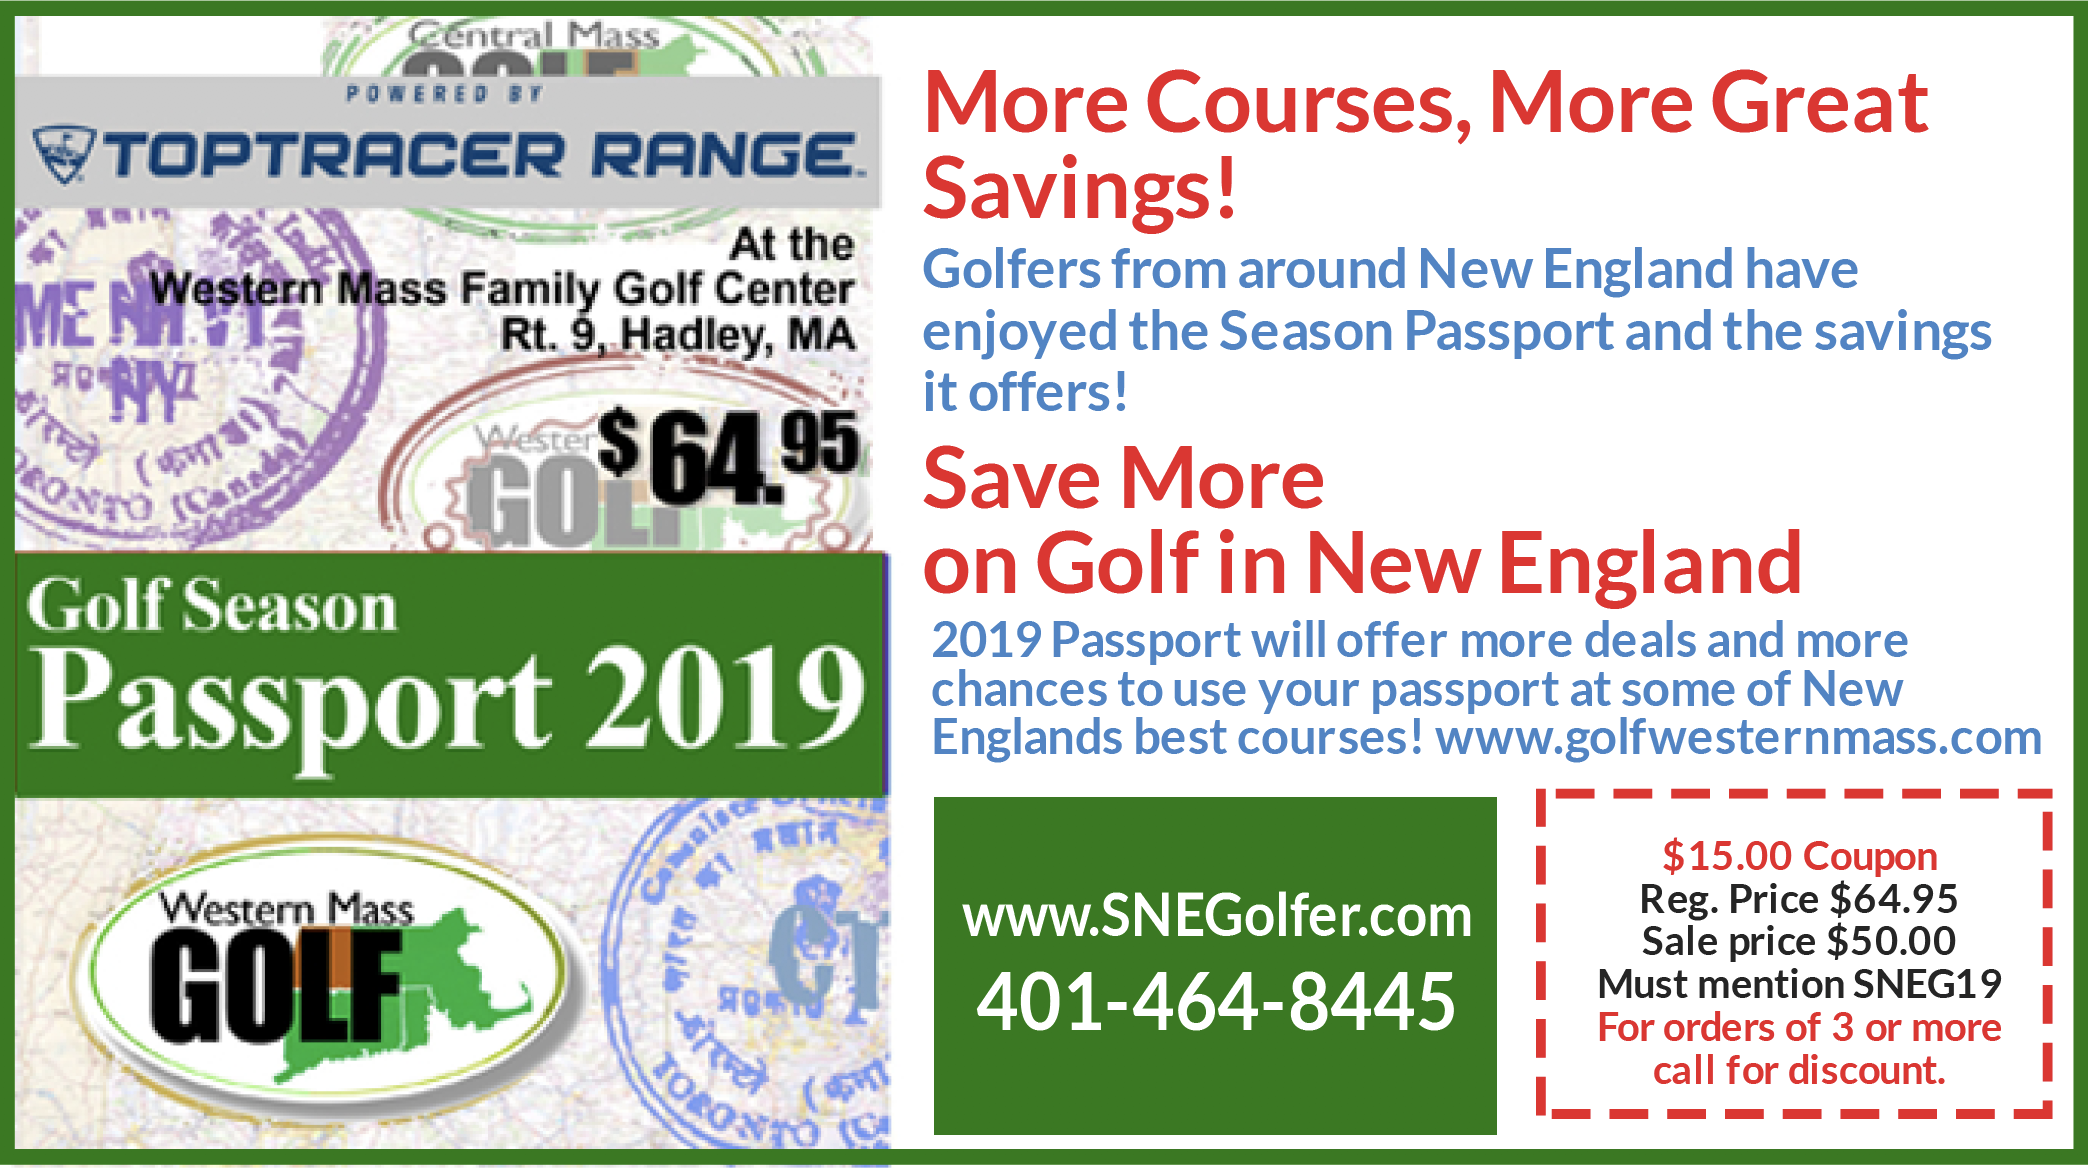 2018 Season Passport - Huge Savings on New England Golf